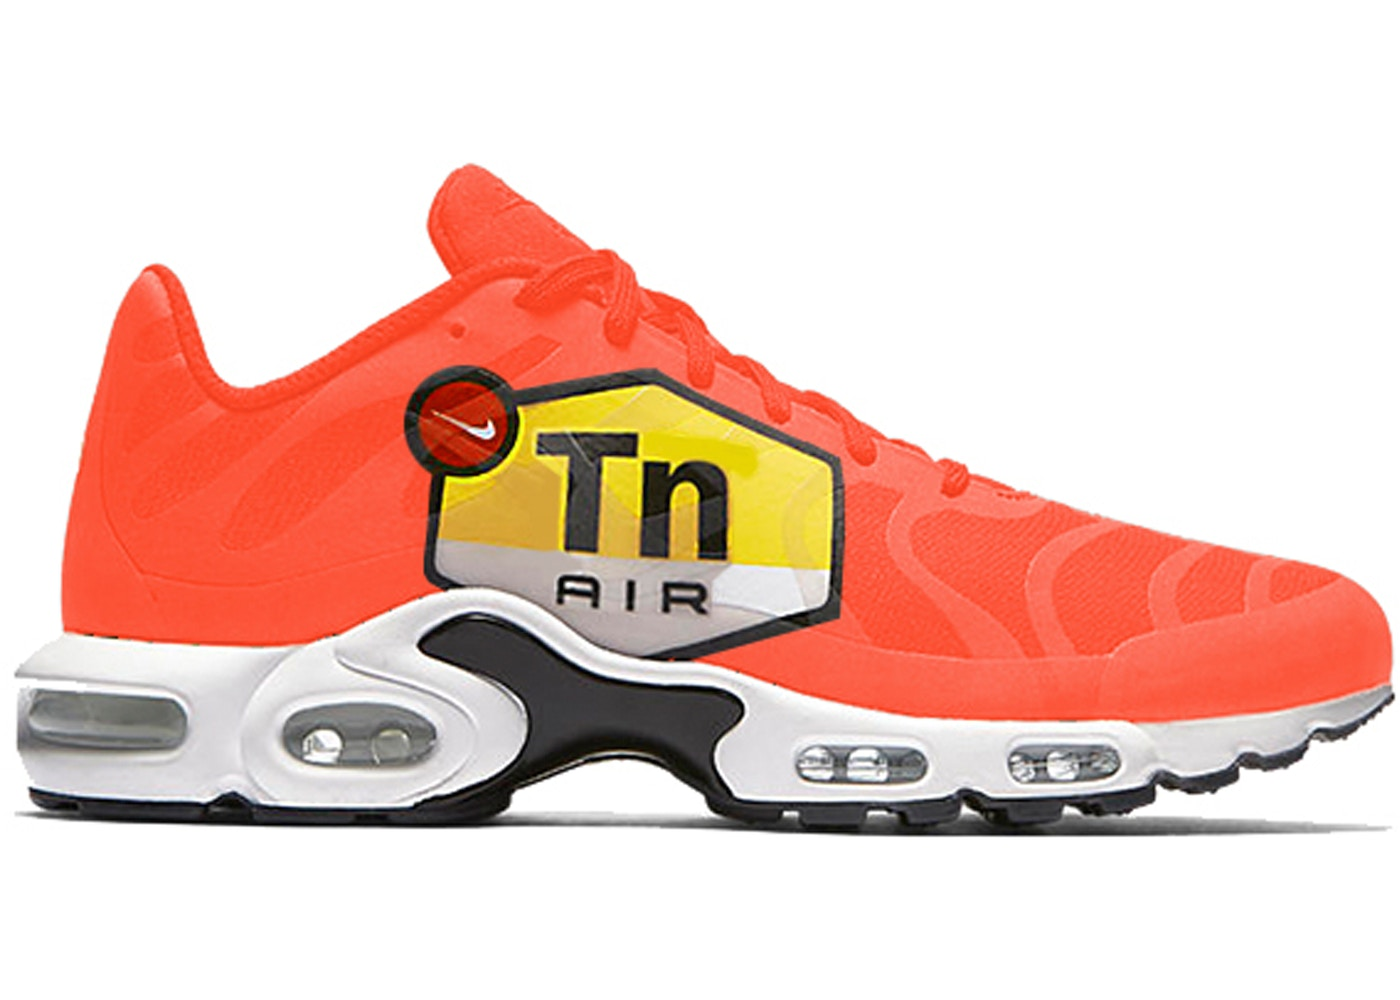 Nike Air Max Plus Big Logo Total Orange Aj7181 800